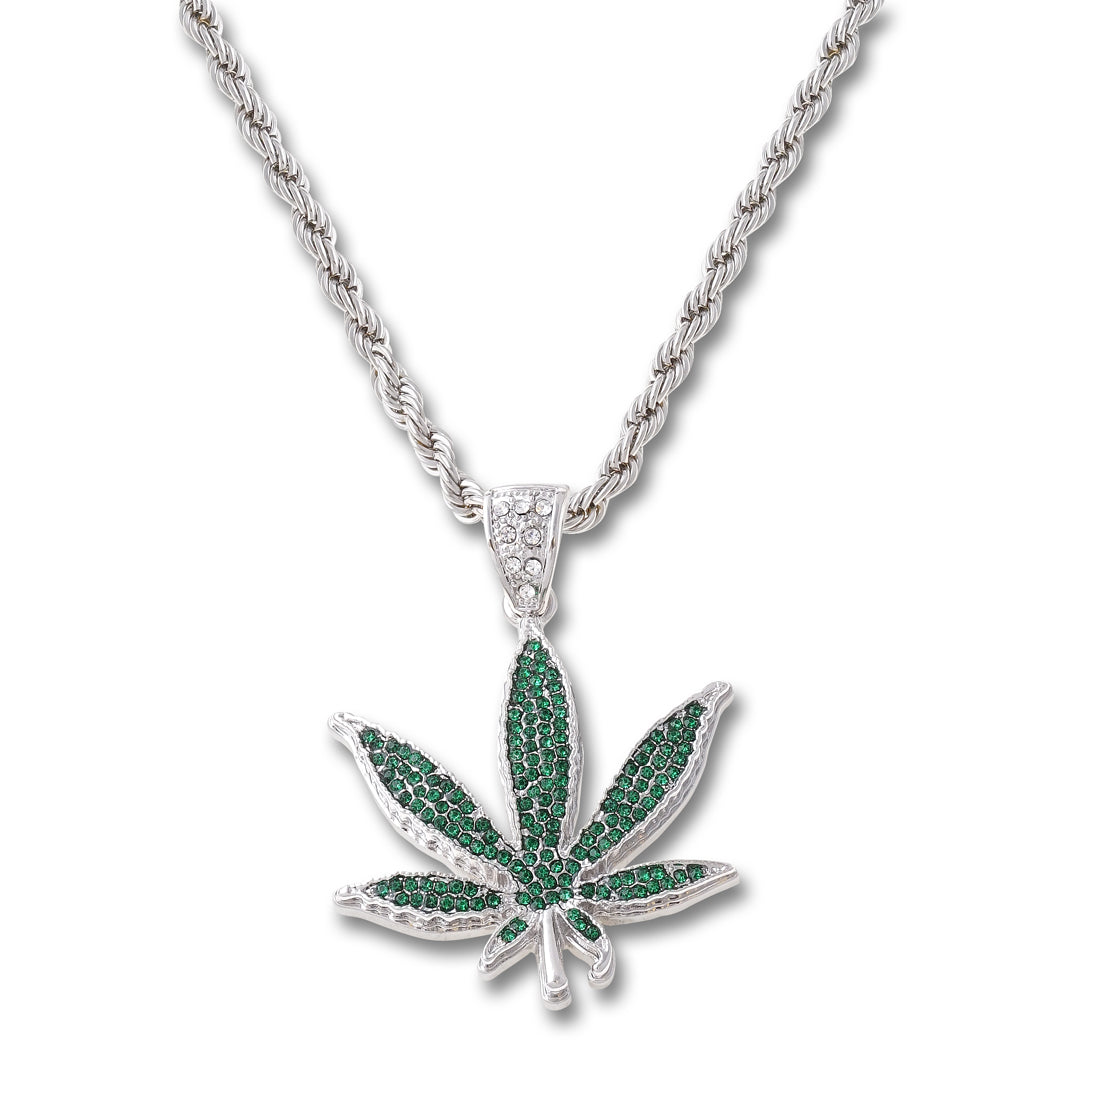 SILVER Green Weed Pendant Necklace - URBANCREWS